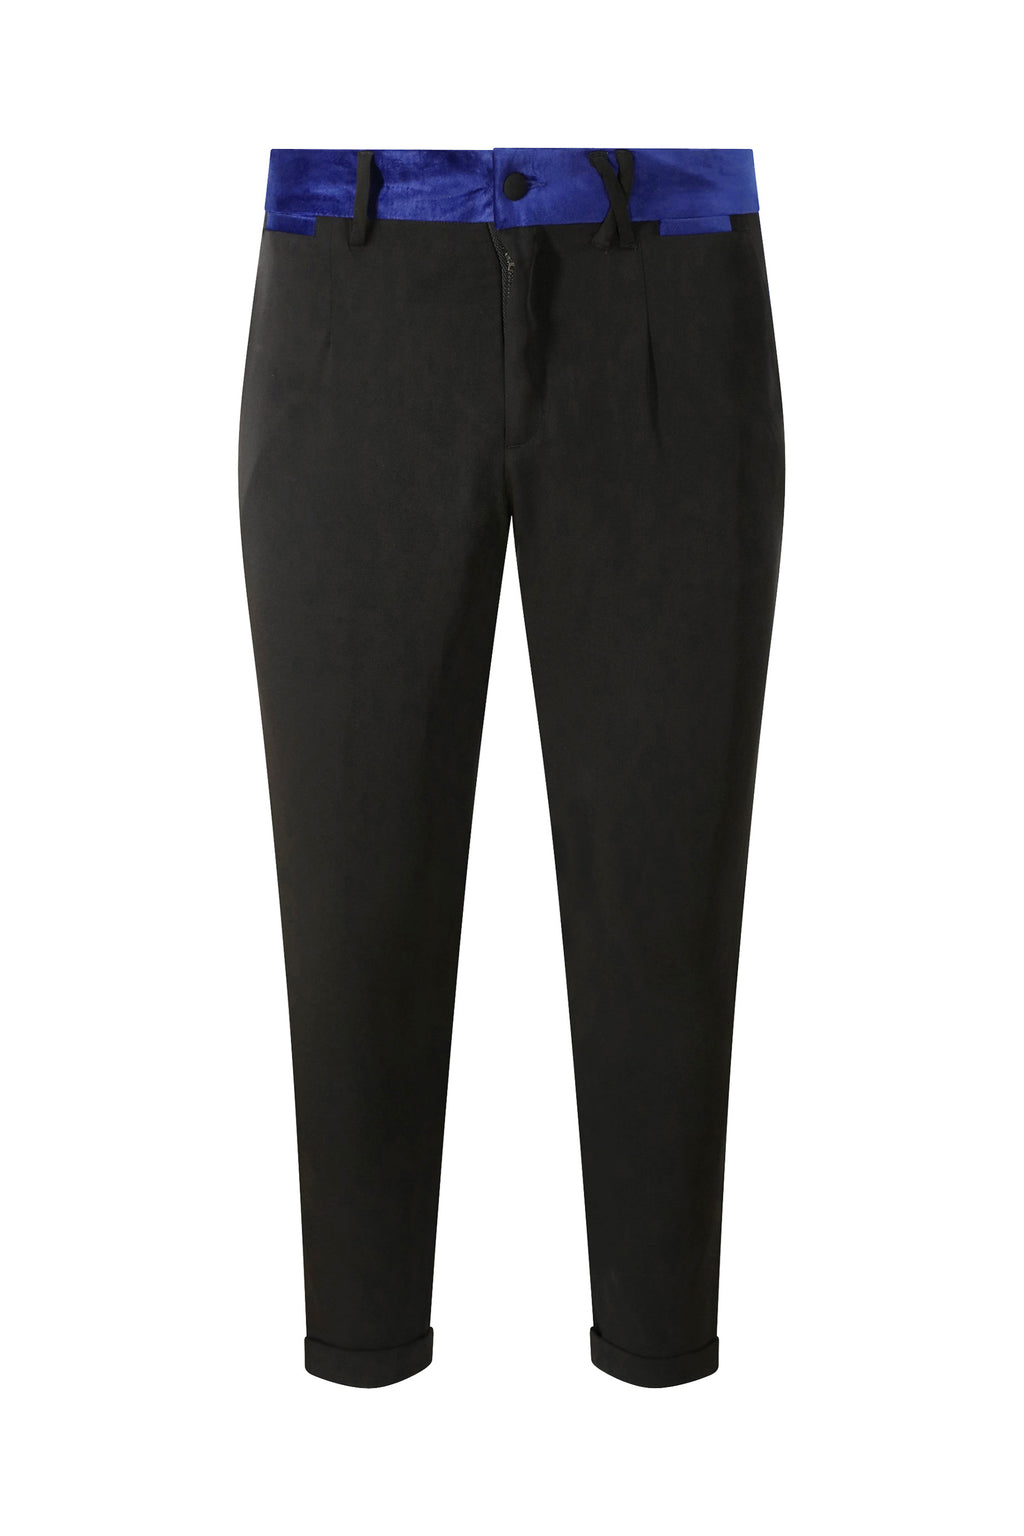 Unisex Tuxedo Trousers with Blue Velvet Stripe